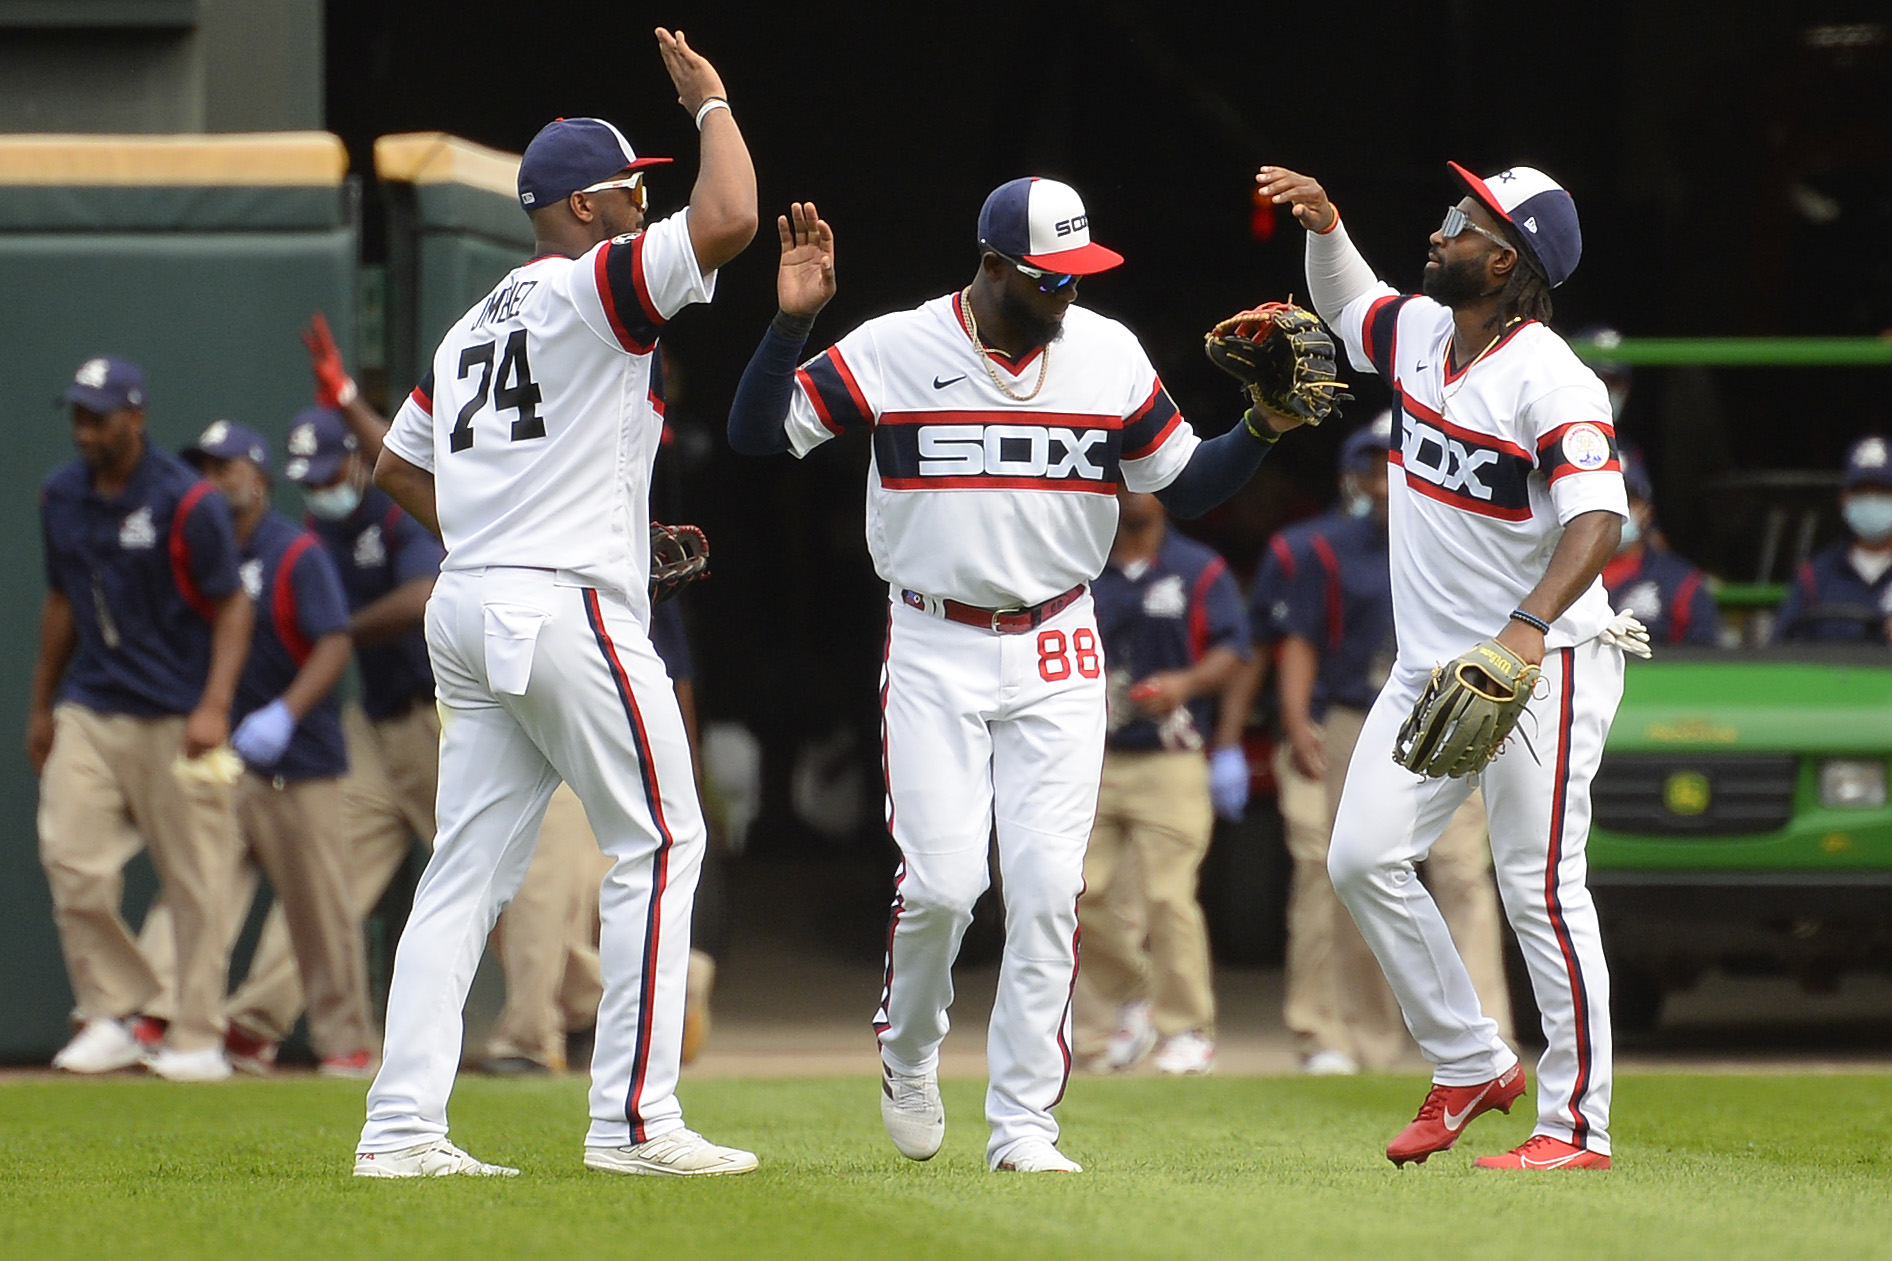 Eloy Jimenez, Luis Robert and Brian Goodwin of the Chicago White Sox celebrate after the game against the Chicago Cubs on August 29, 2021 at Guaranteed Rate Field in Chicago, Illinois.